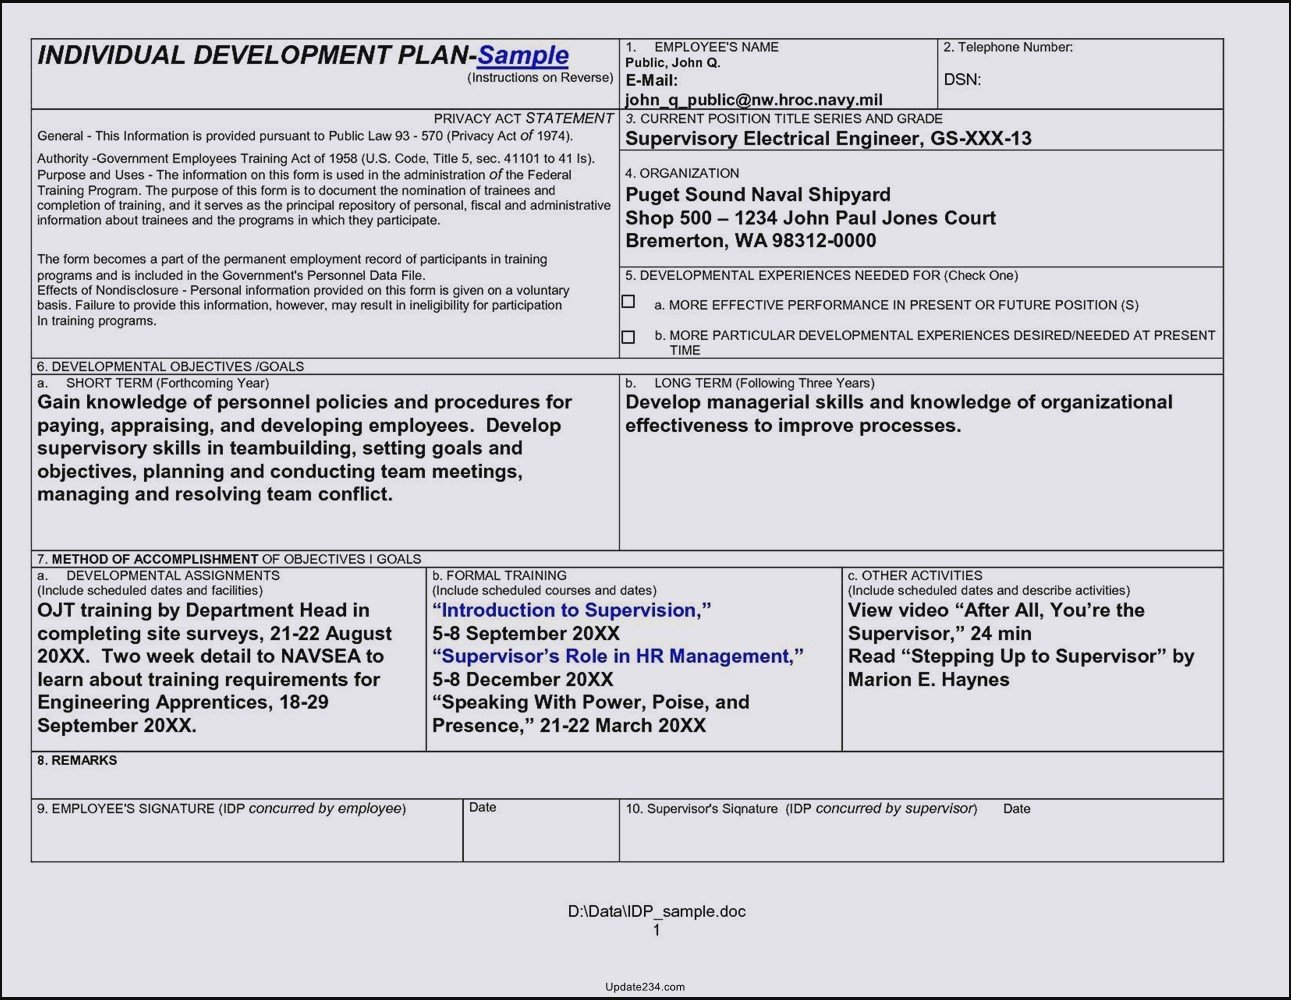 Career Development Plan Template Unique Career Development Plan Template Doc Template Update234